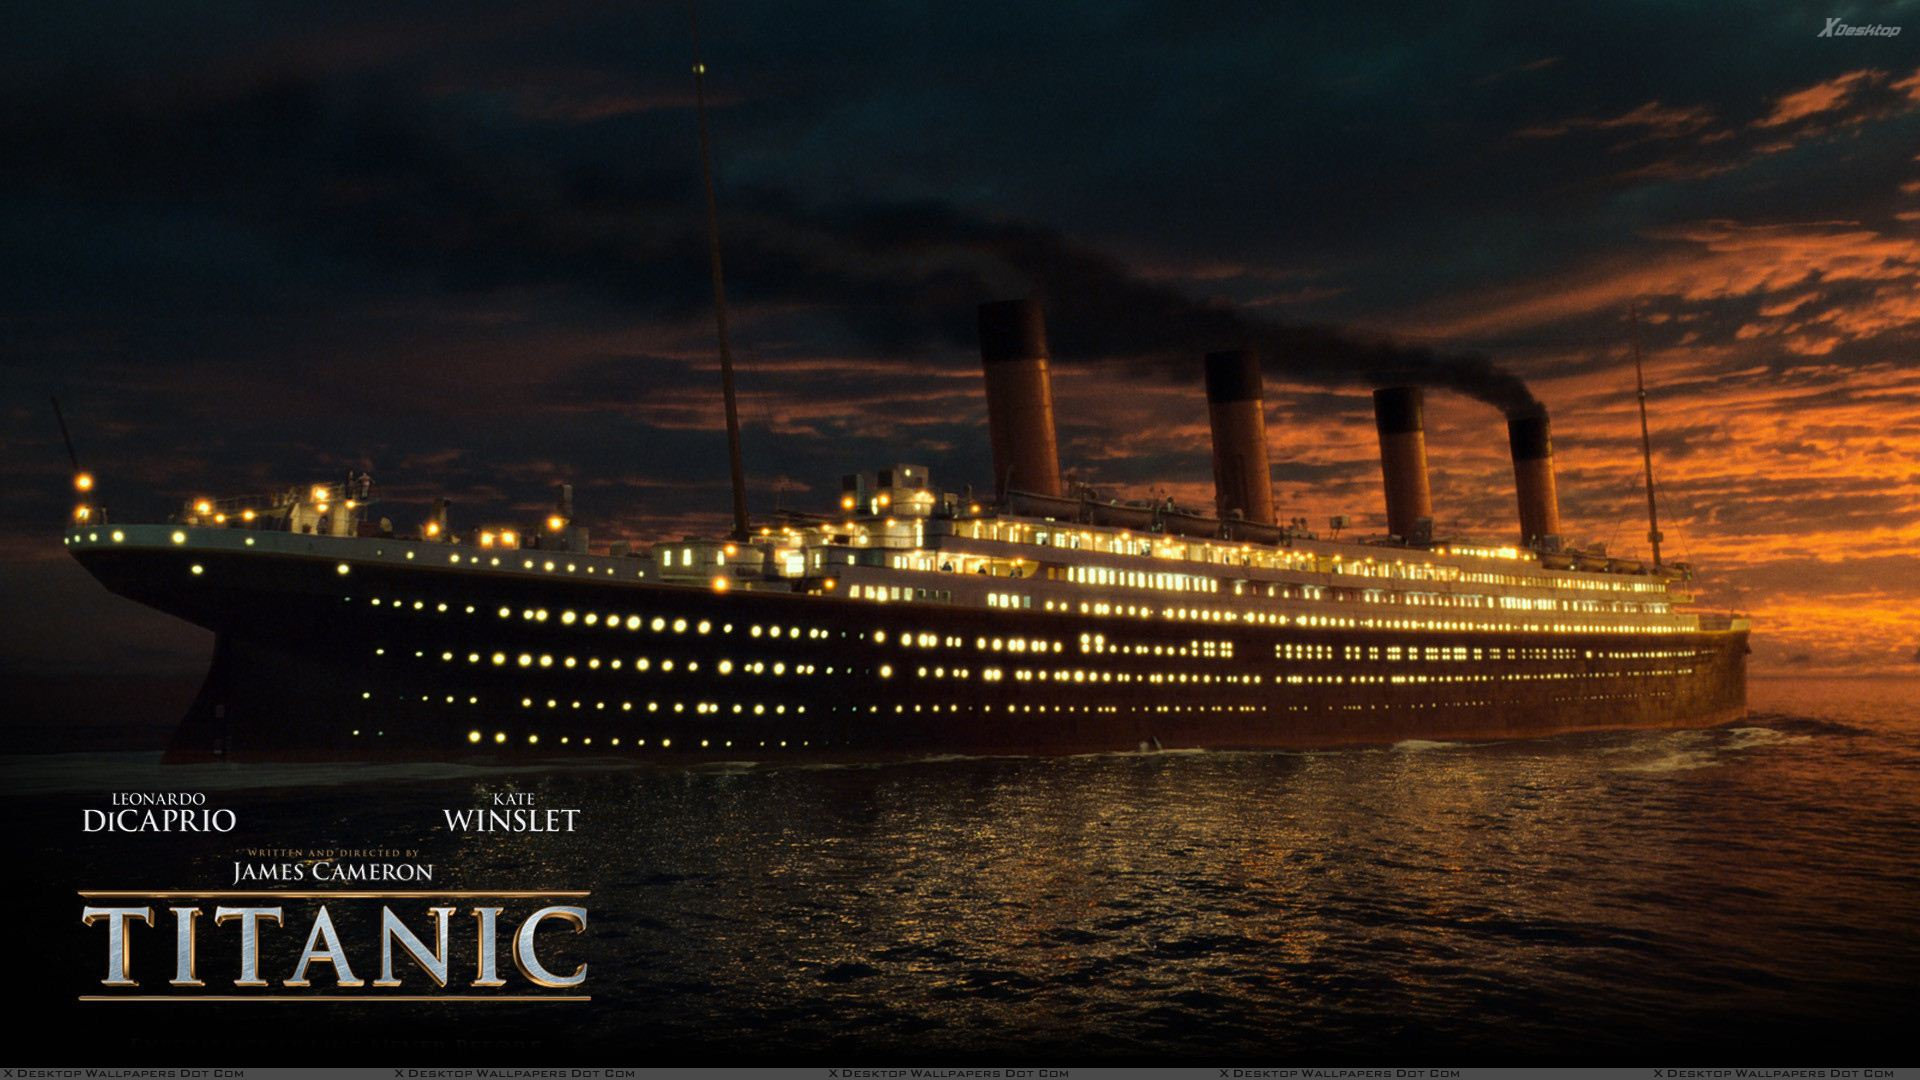 titanic – ship at sunset time wallpaper